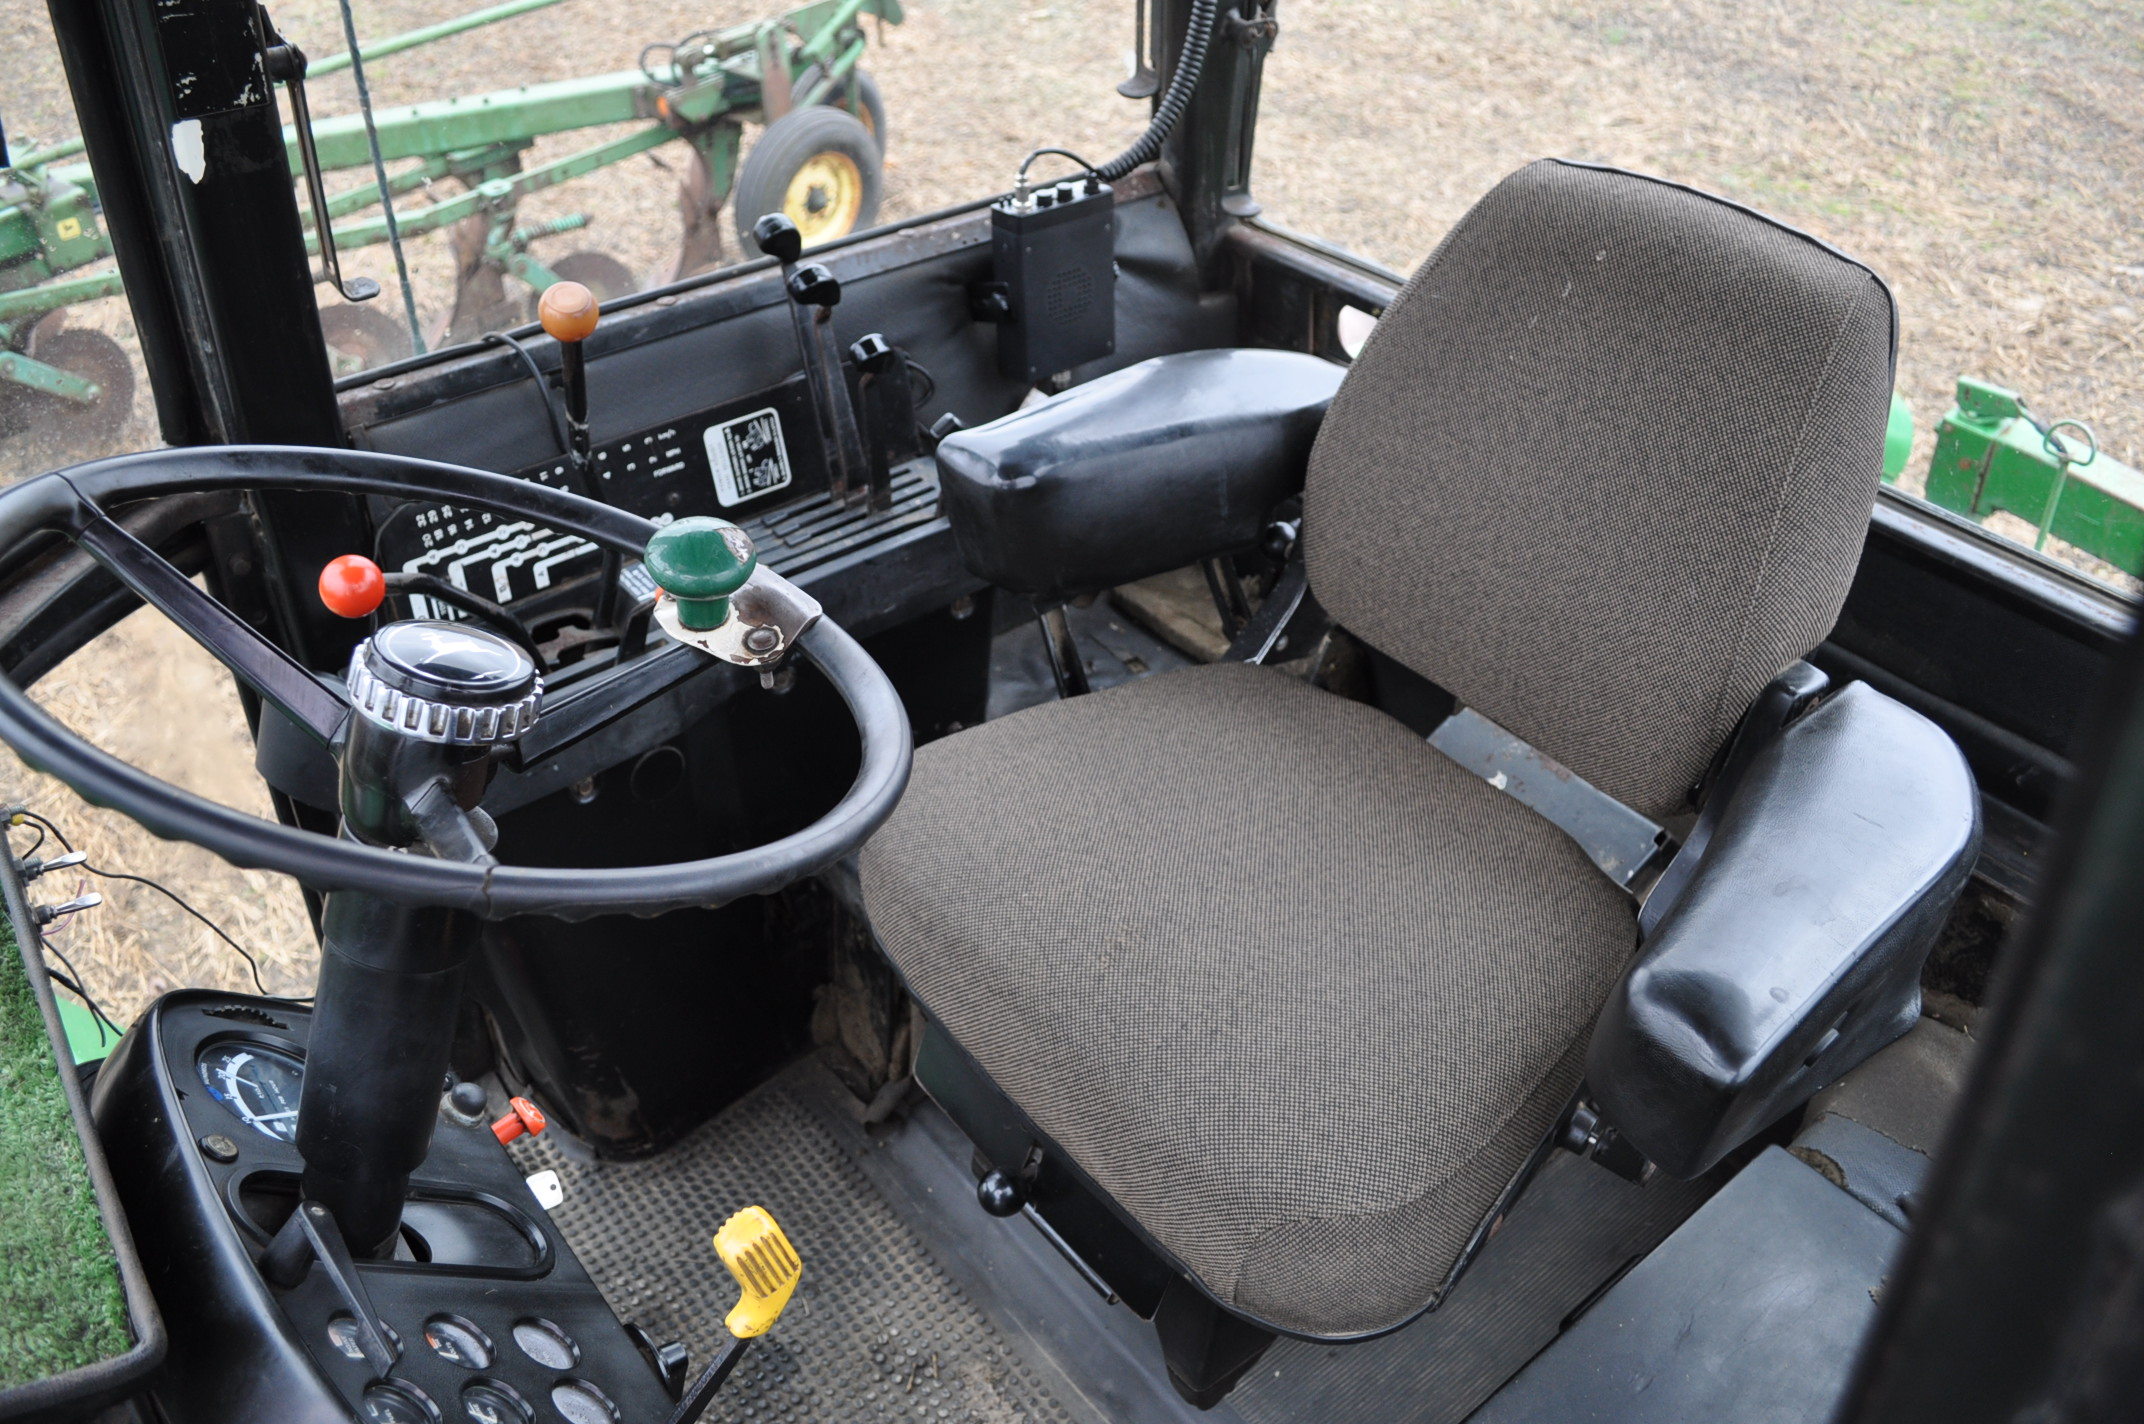 John Deere 8430 tractor, 4WD, diesel, 20.8-34 duals, CHA, Quad range, 3 hyd remotes, 1000 pto, 3 pt, - Image 14 of 19